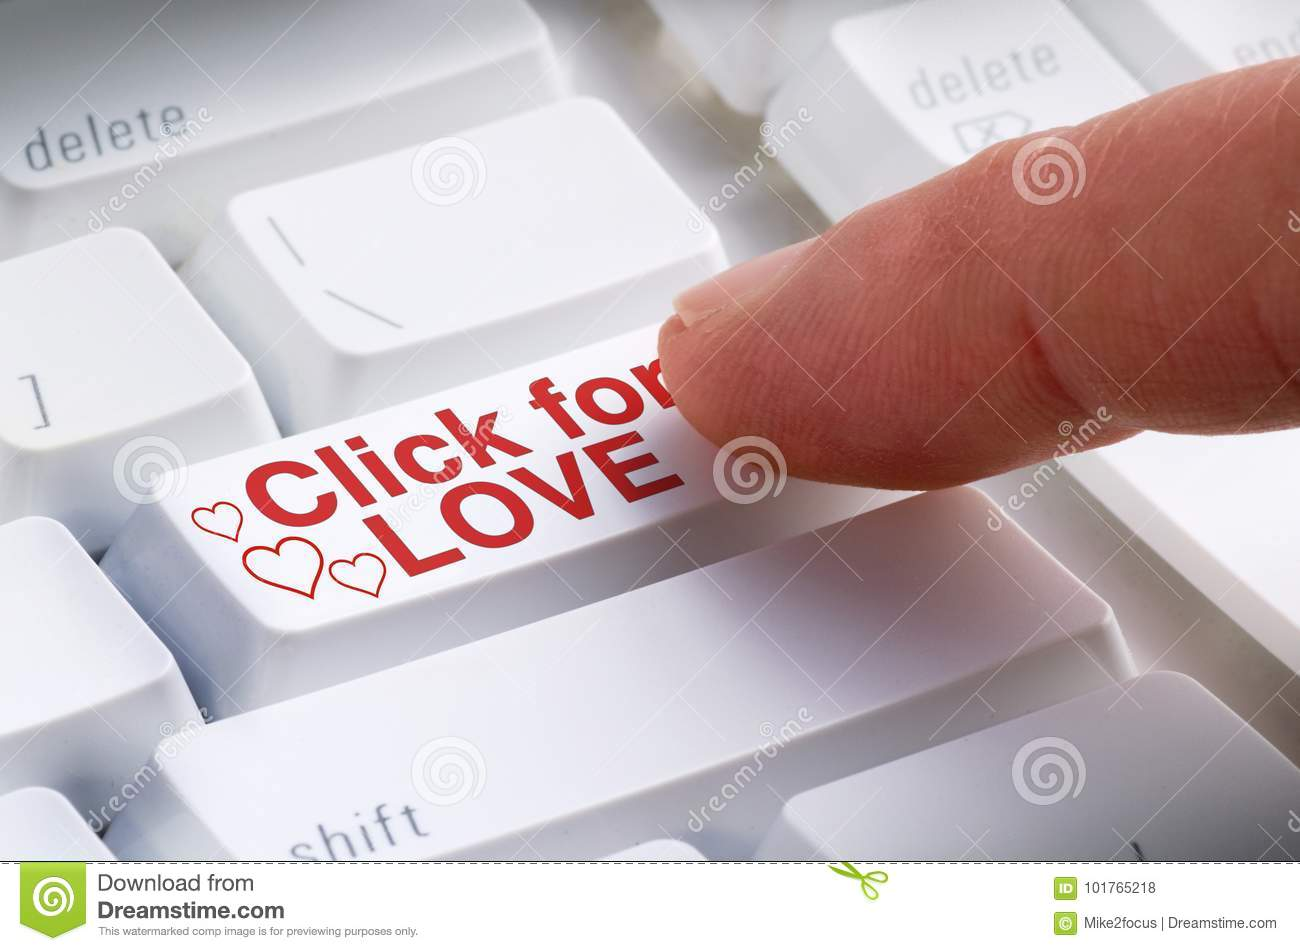 How to type properly online dating